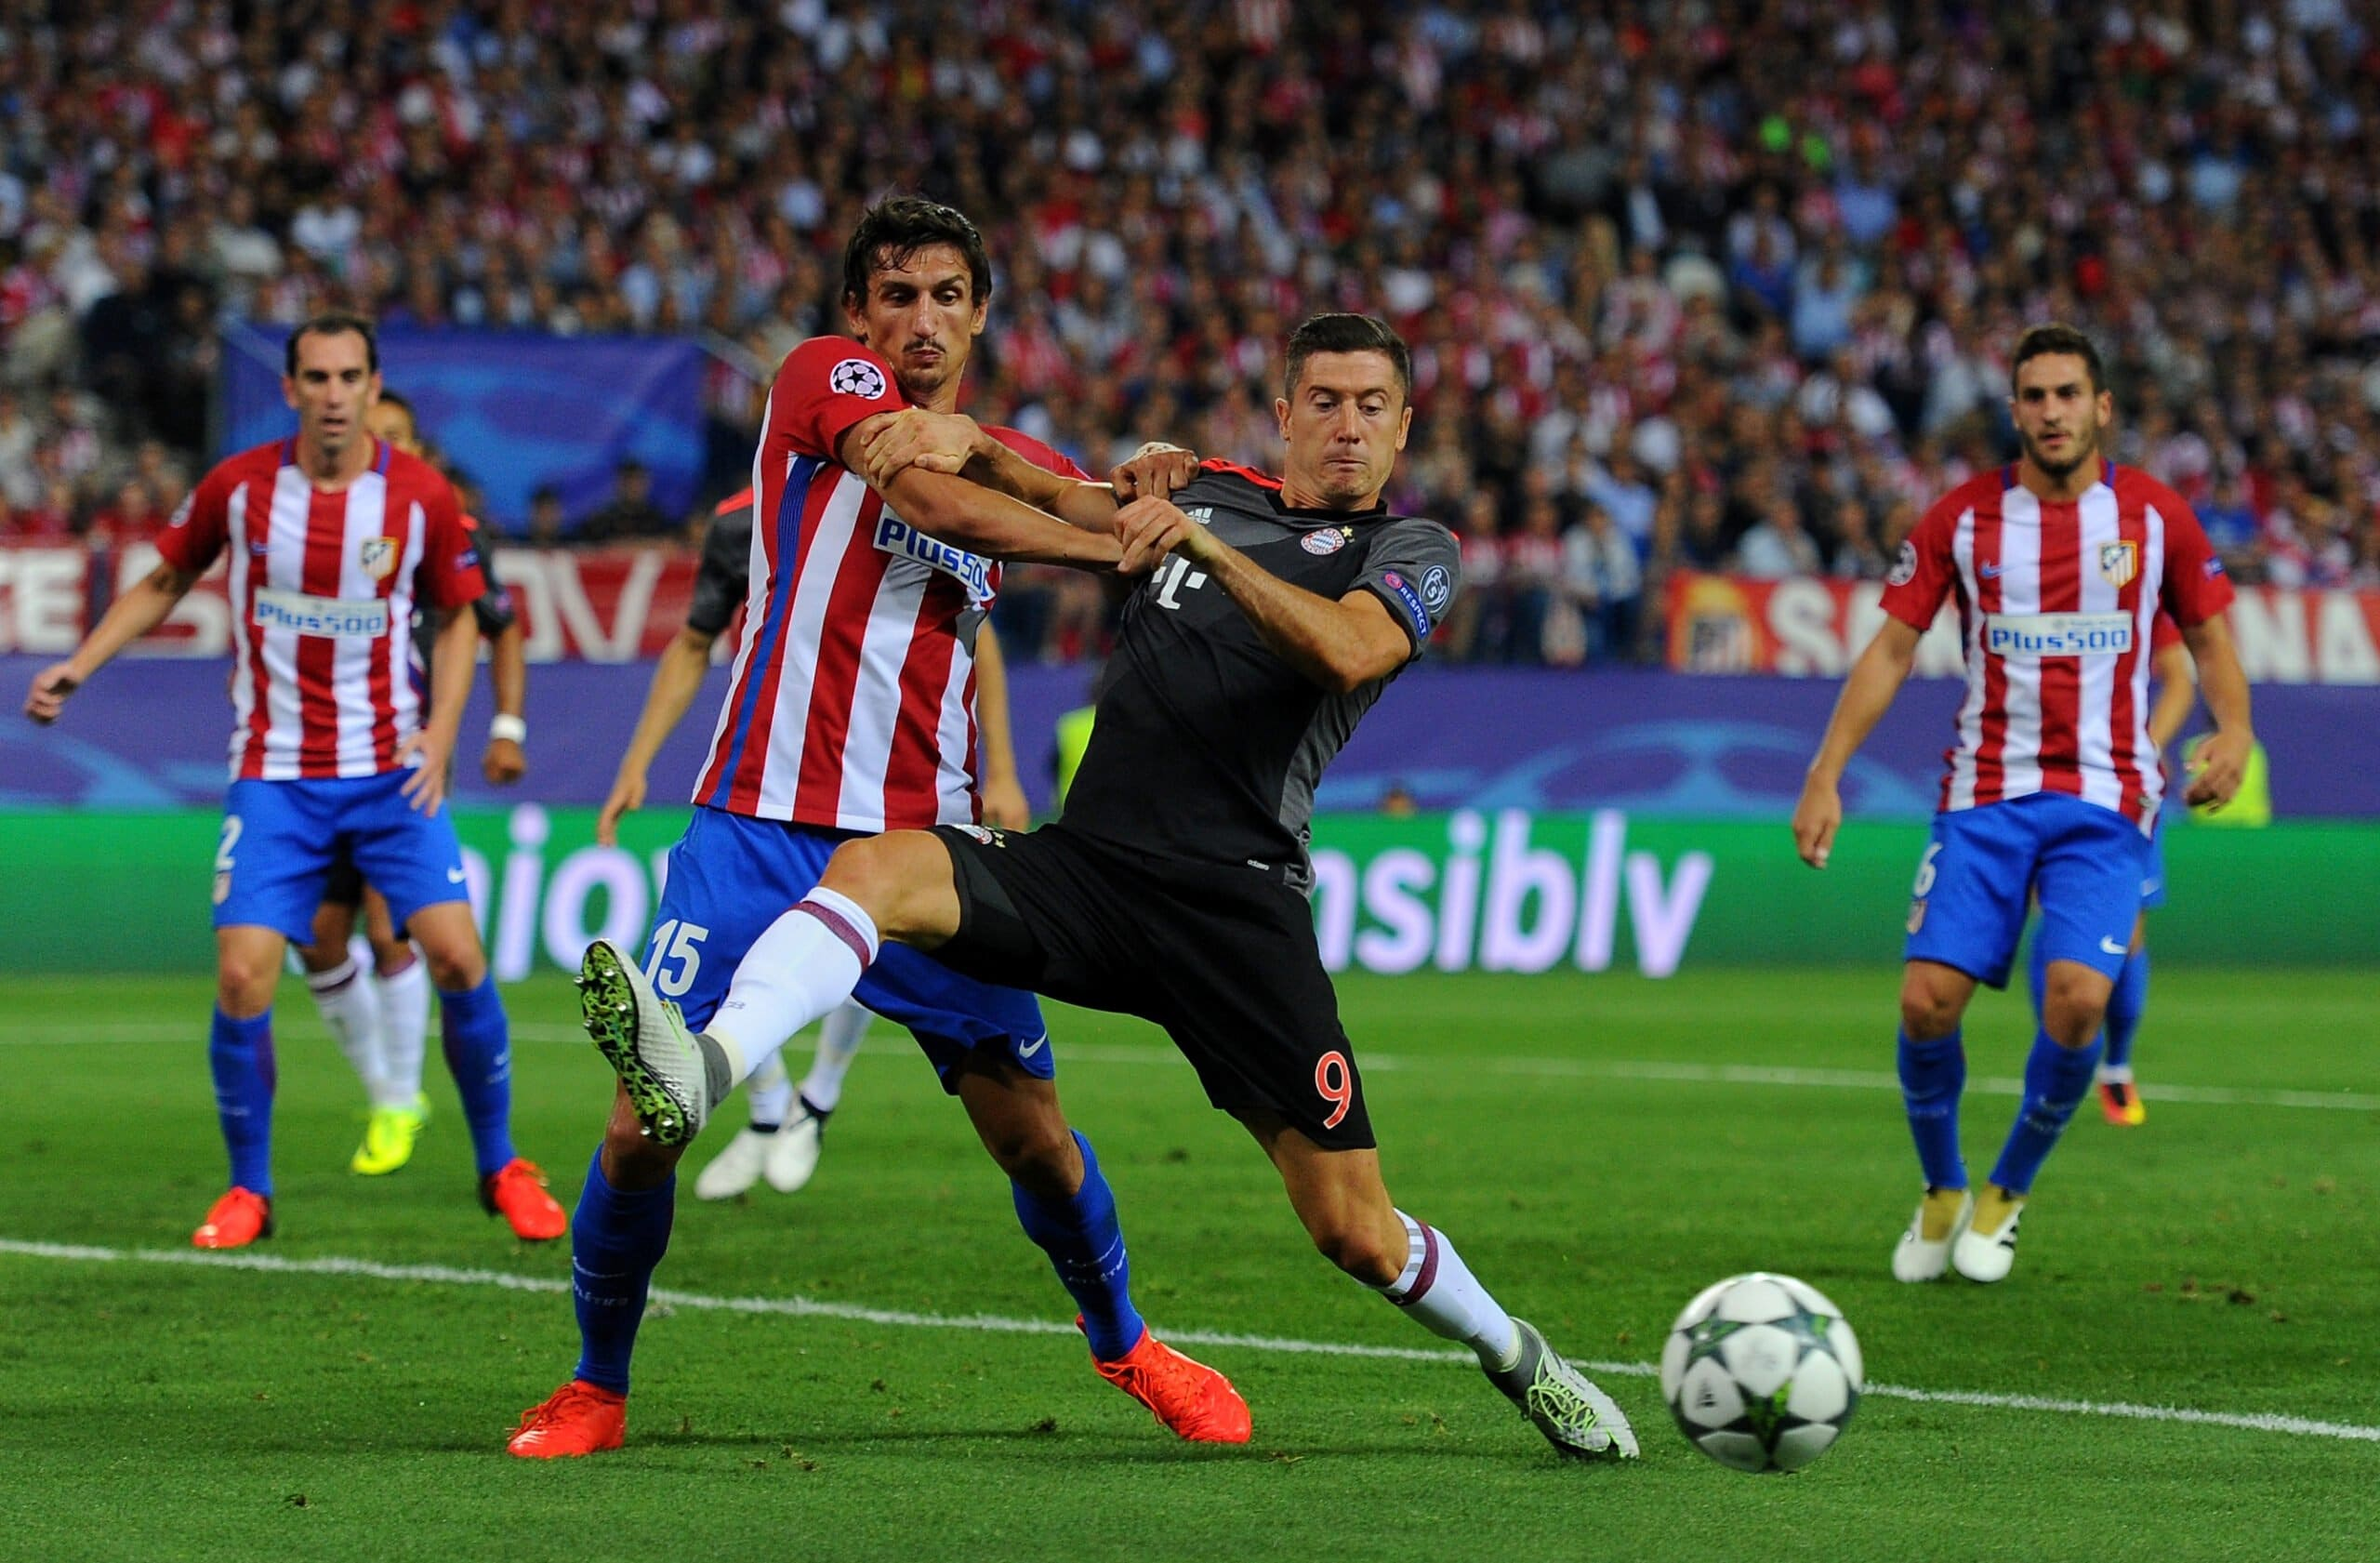 Atletico Madrid TransfergerГјchte